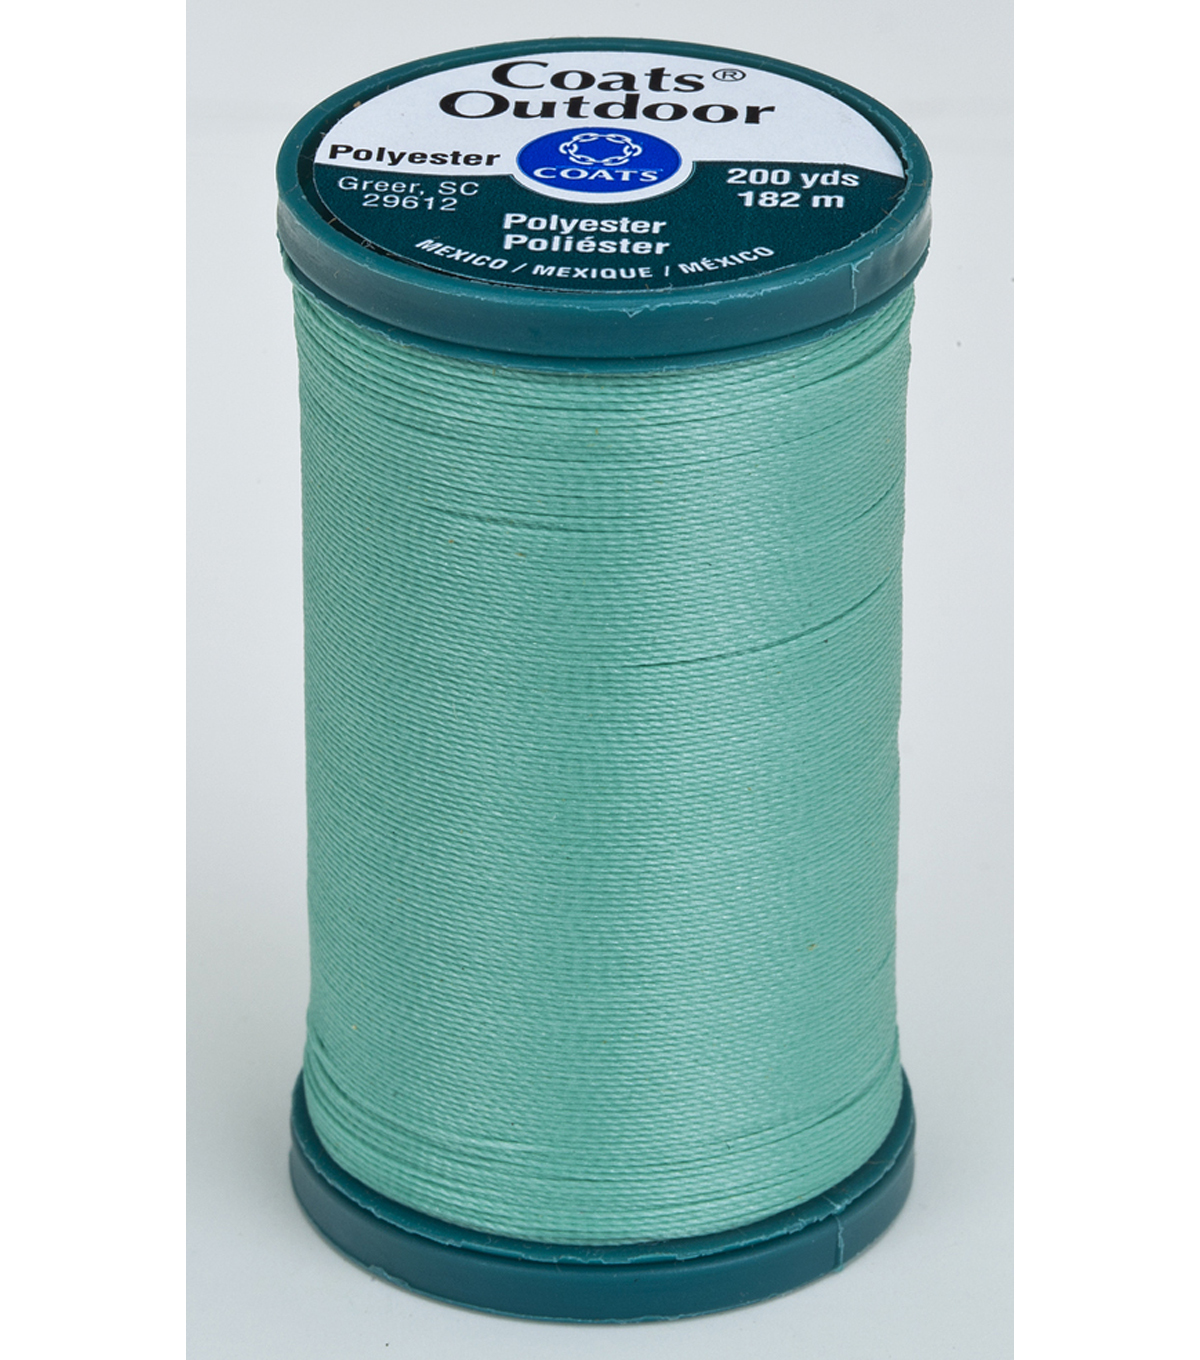 Coats & Clark Outdoor 200yd Thread, Coats Outdoor 200yd Caribbean